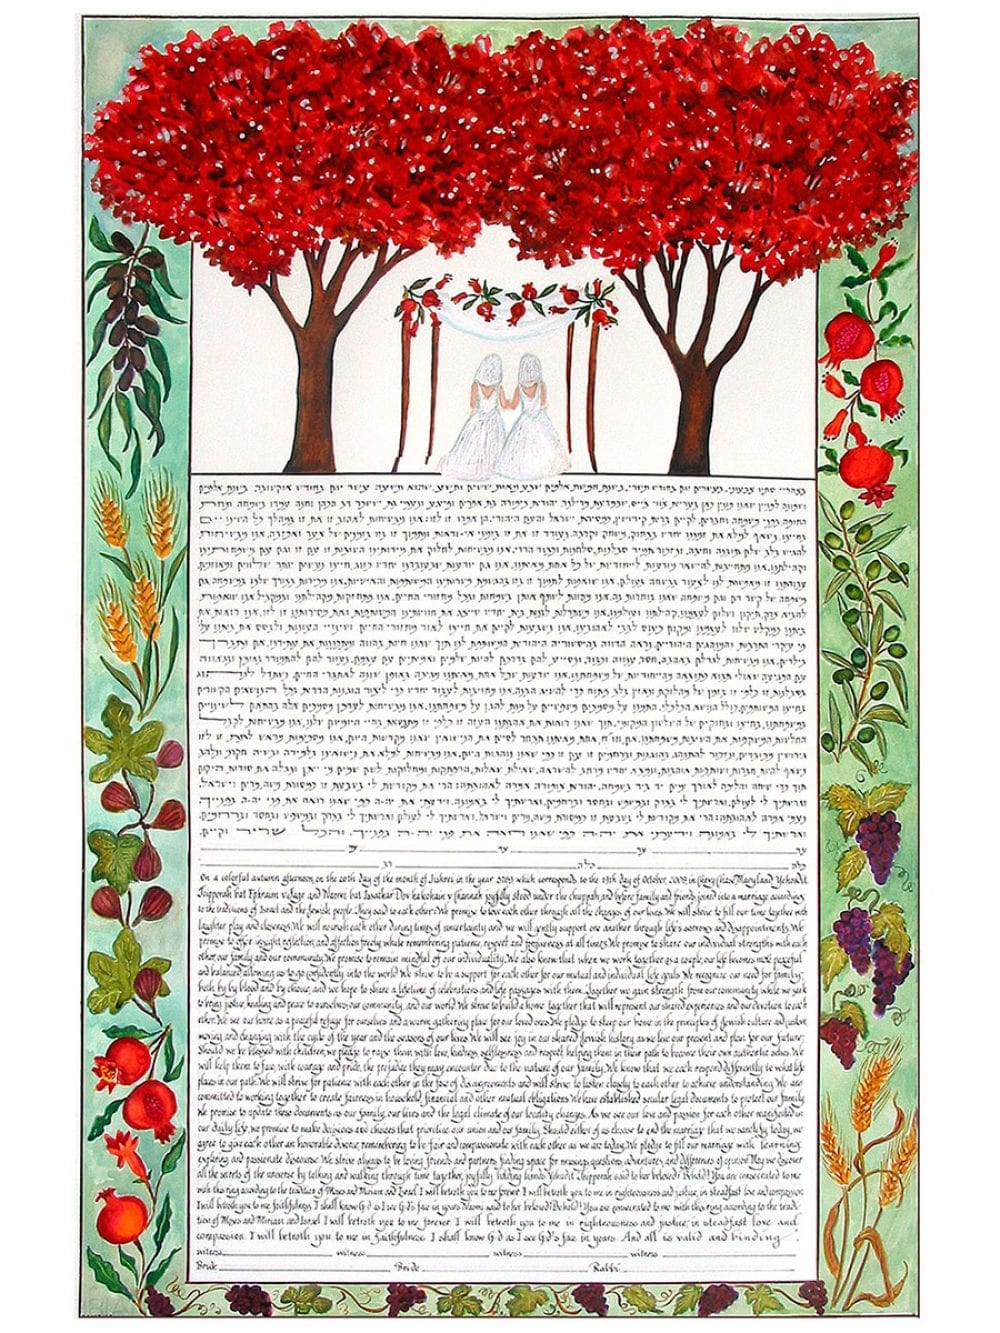 2-maples-2-brides-ketubah-